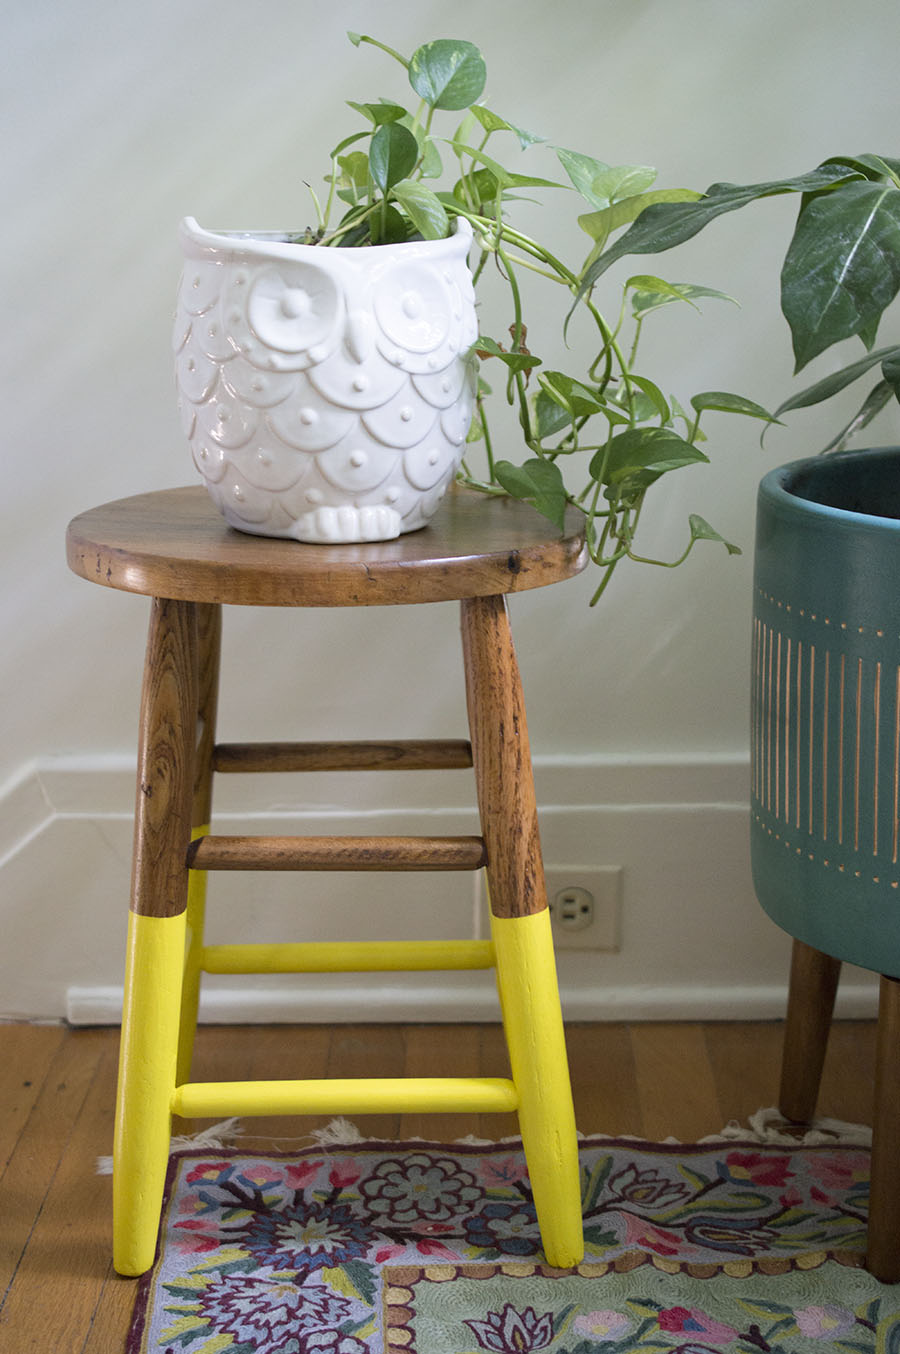 How Many Coats Of Polyurethane On Wood Floors Paint-dipped Plant Stool - A Happy Stitch